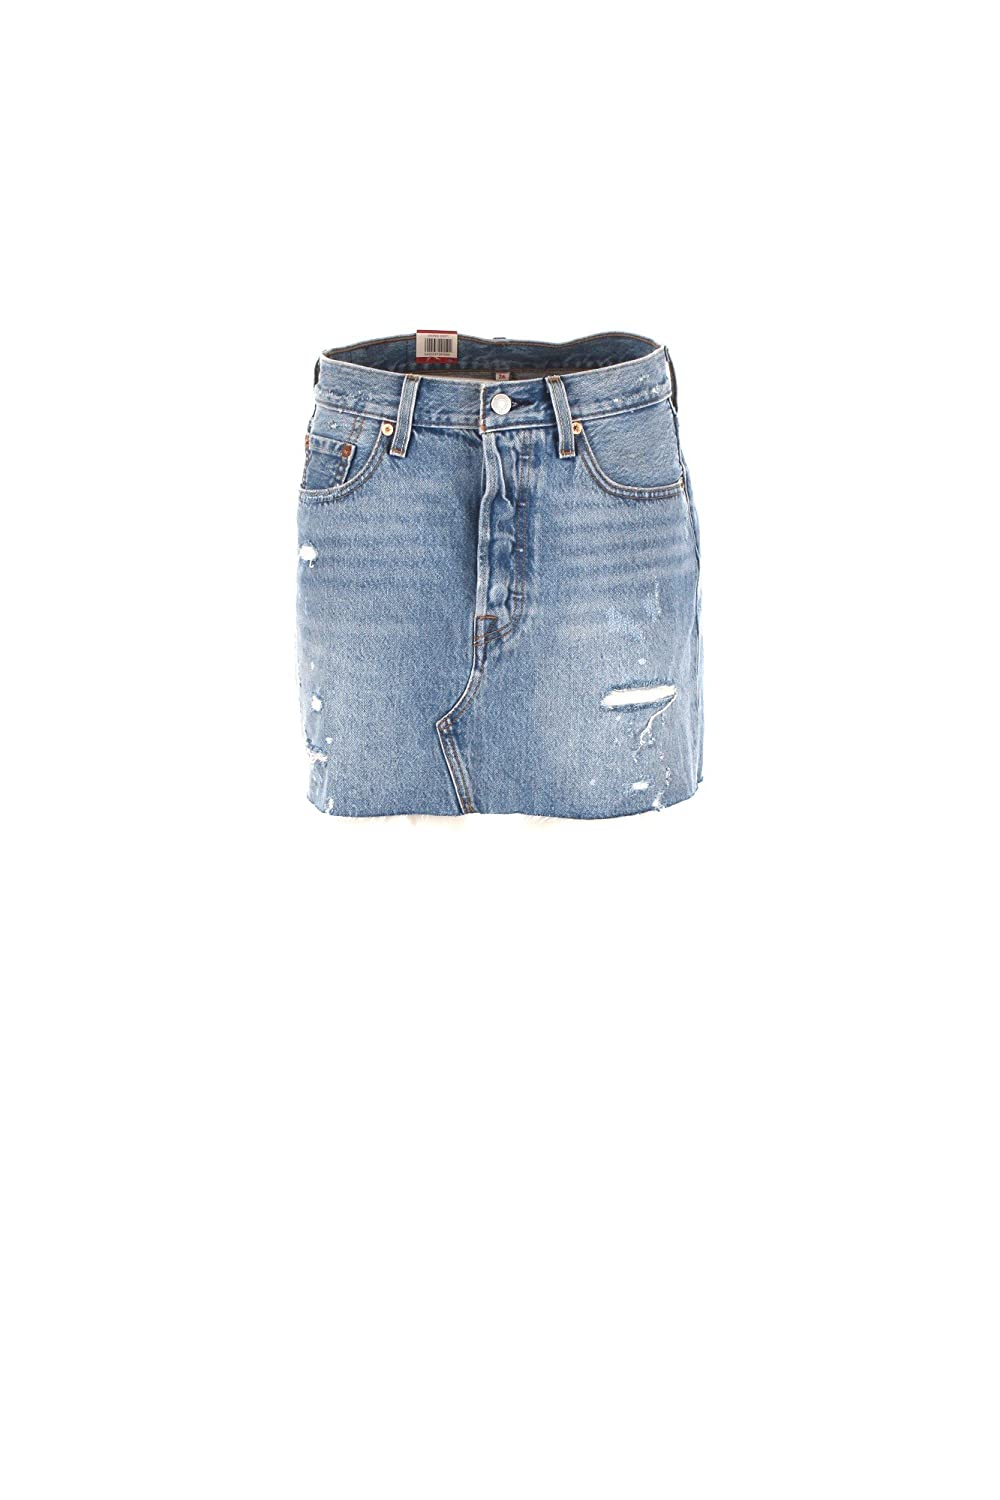 LEVIS 34963 DECONSTRUCTED SKIRT FALDAS Mujer DENIM LIGHT BLUE 28